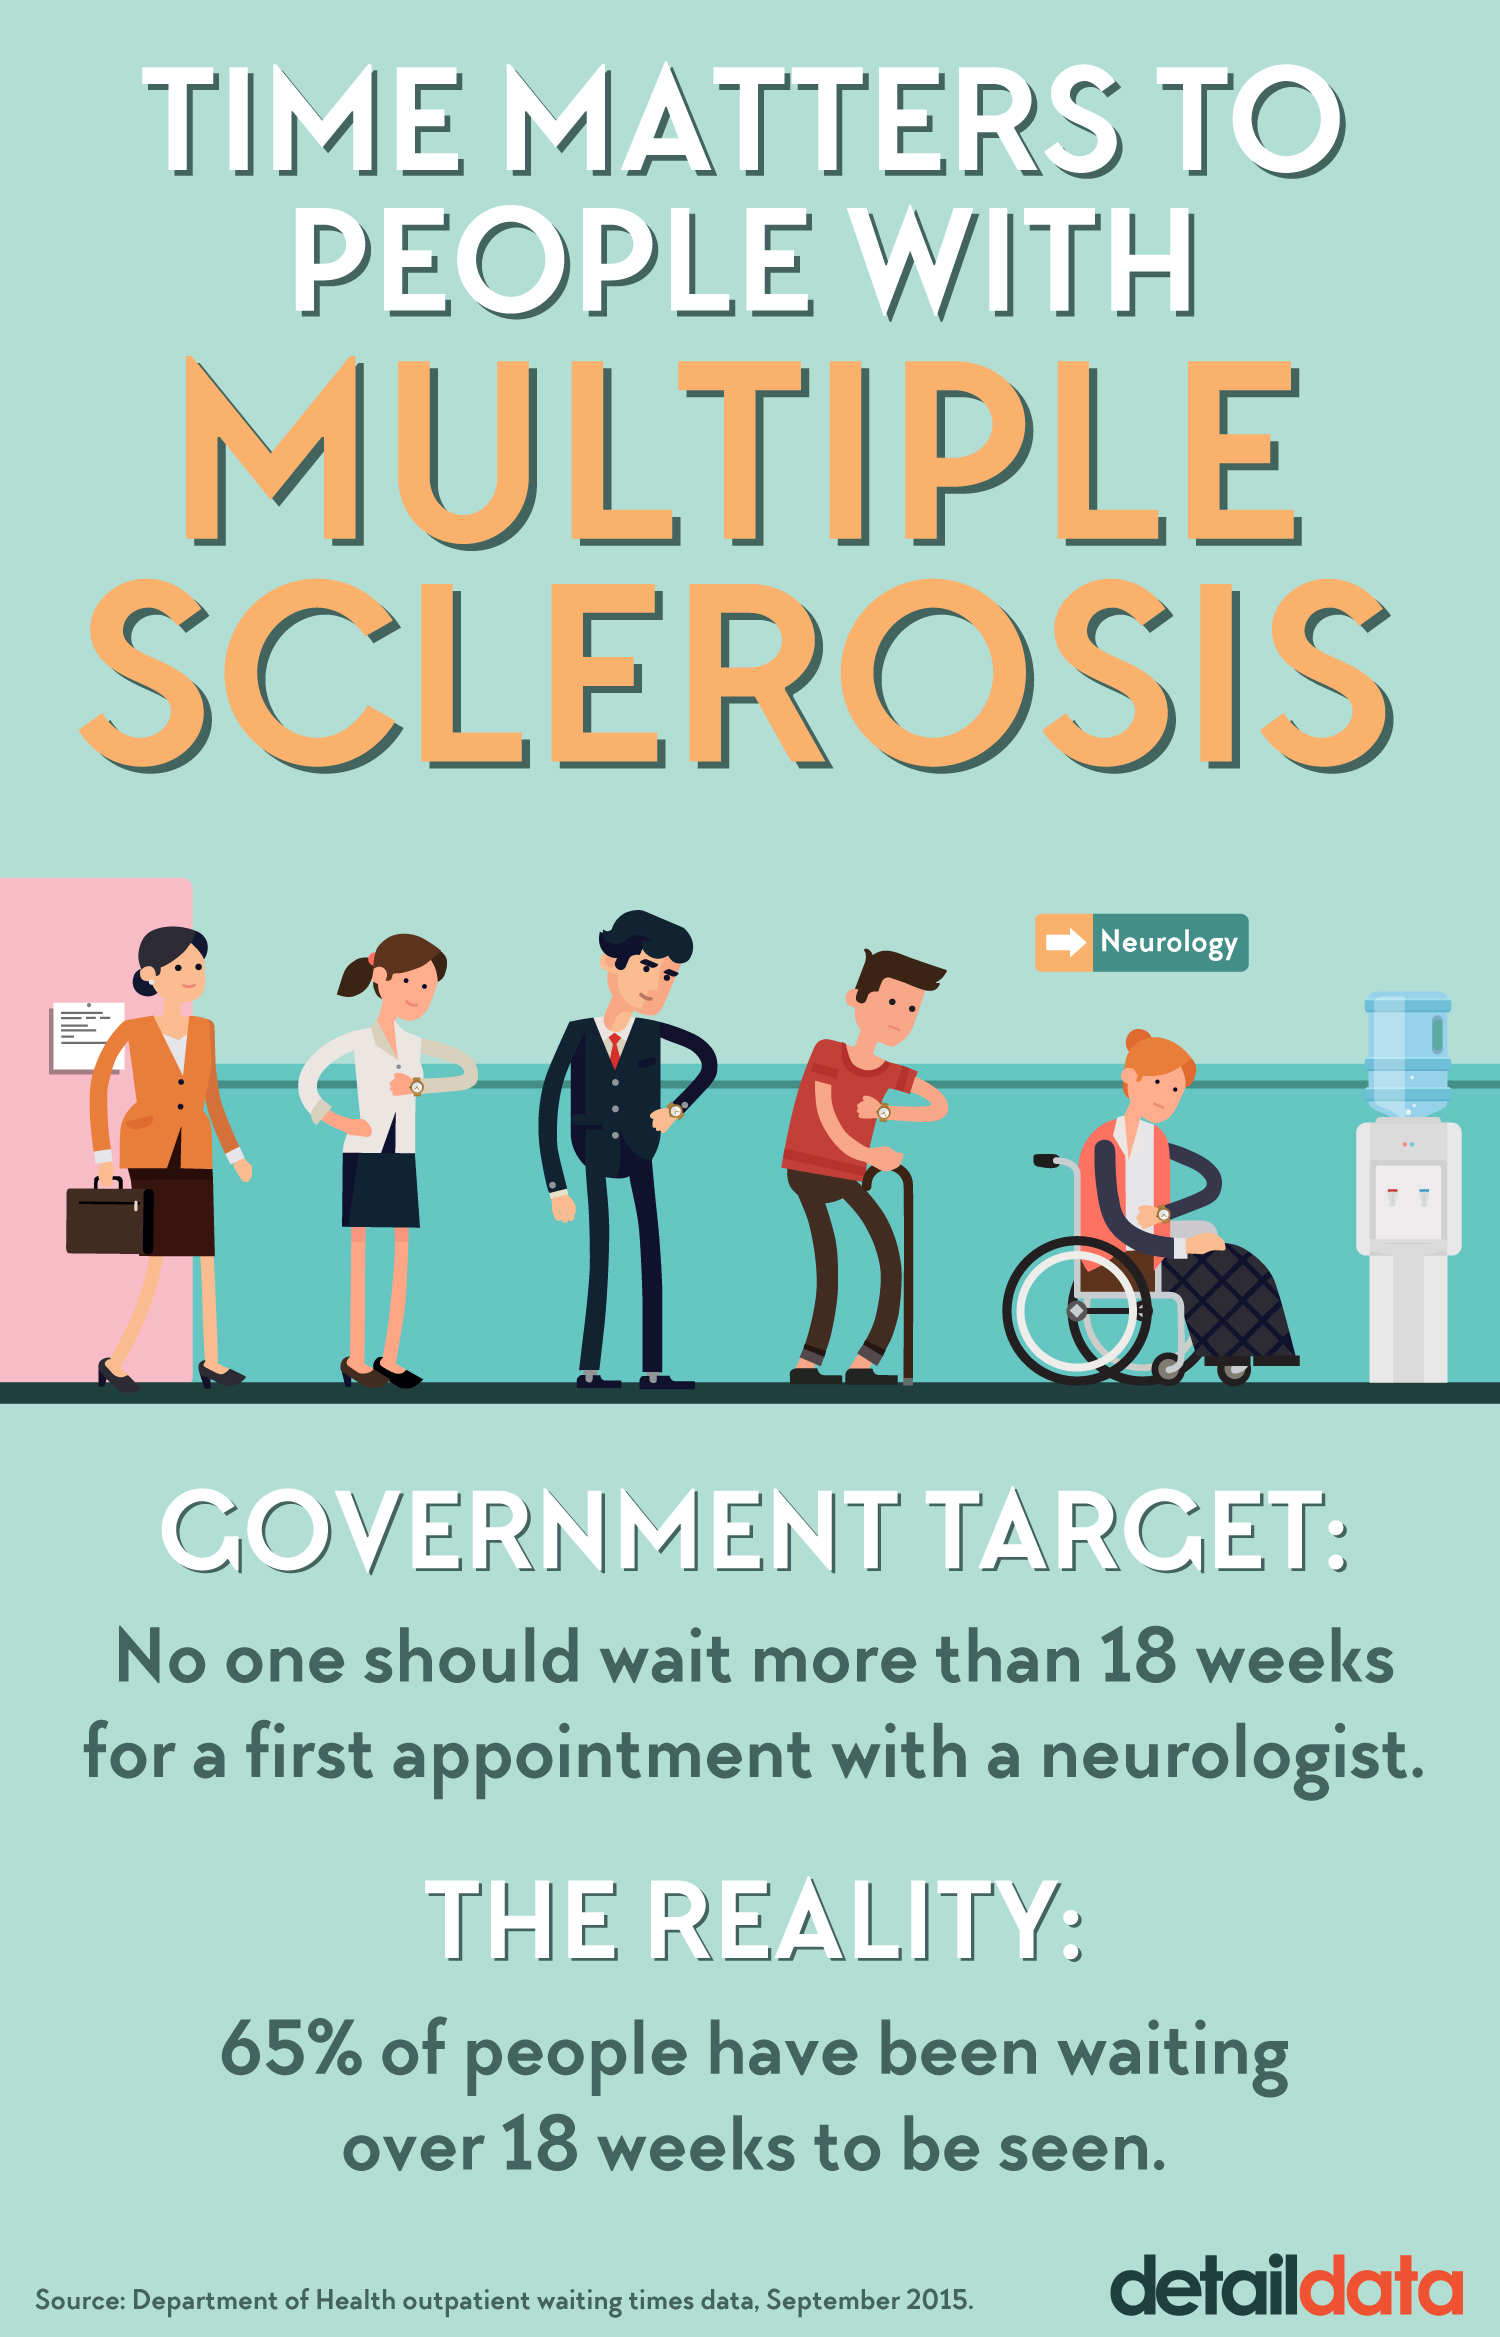 multiple sclerosis: the wait to be seen - investigations & analysis